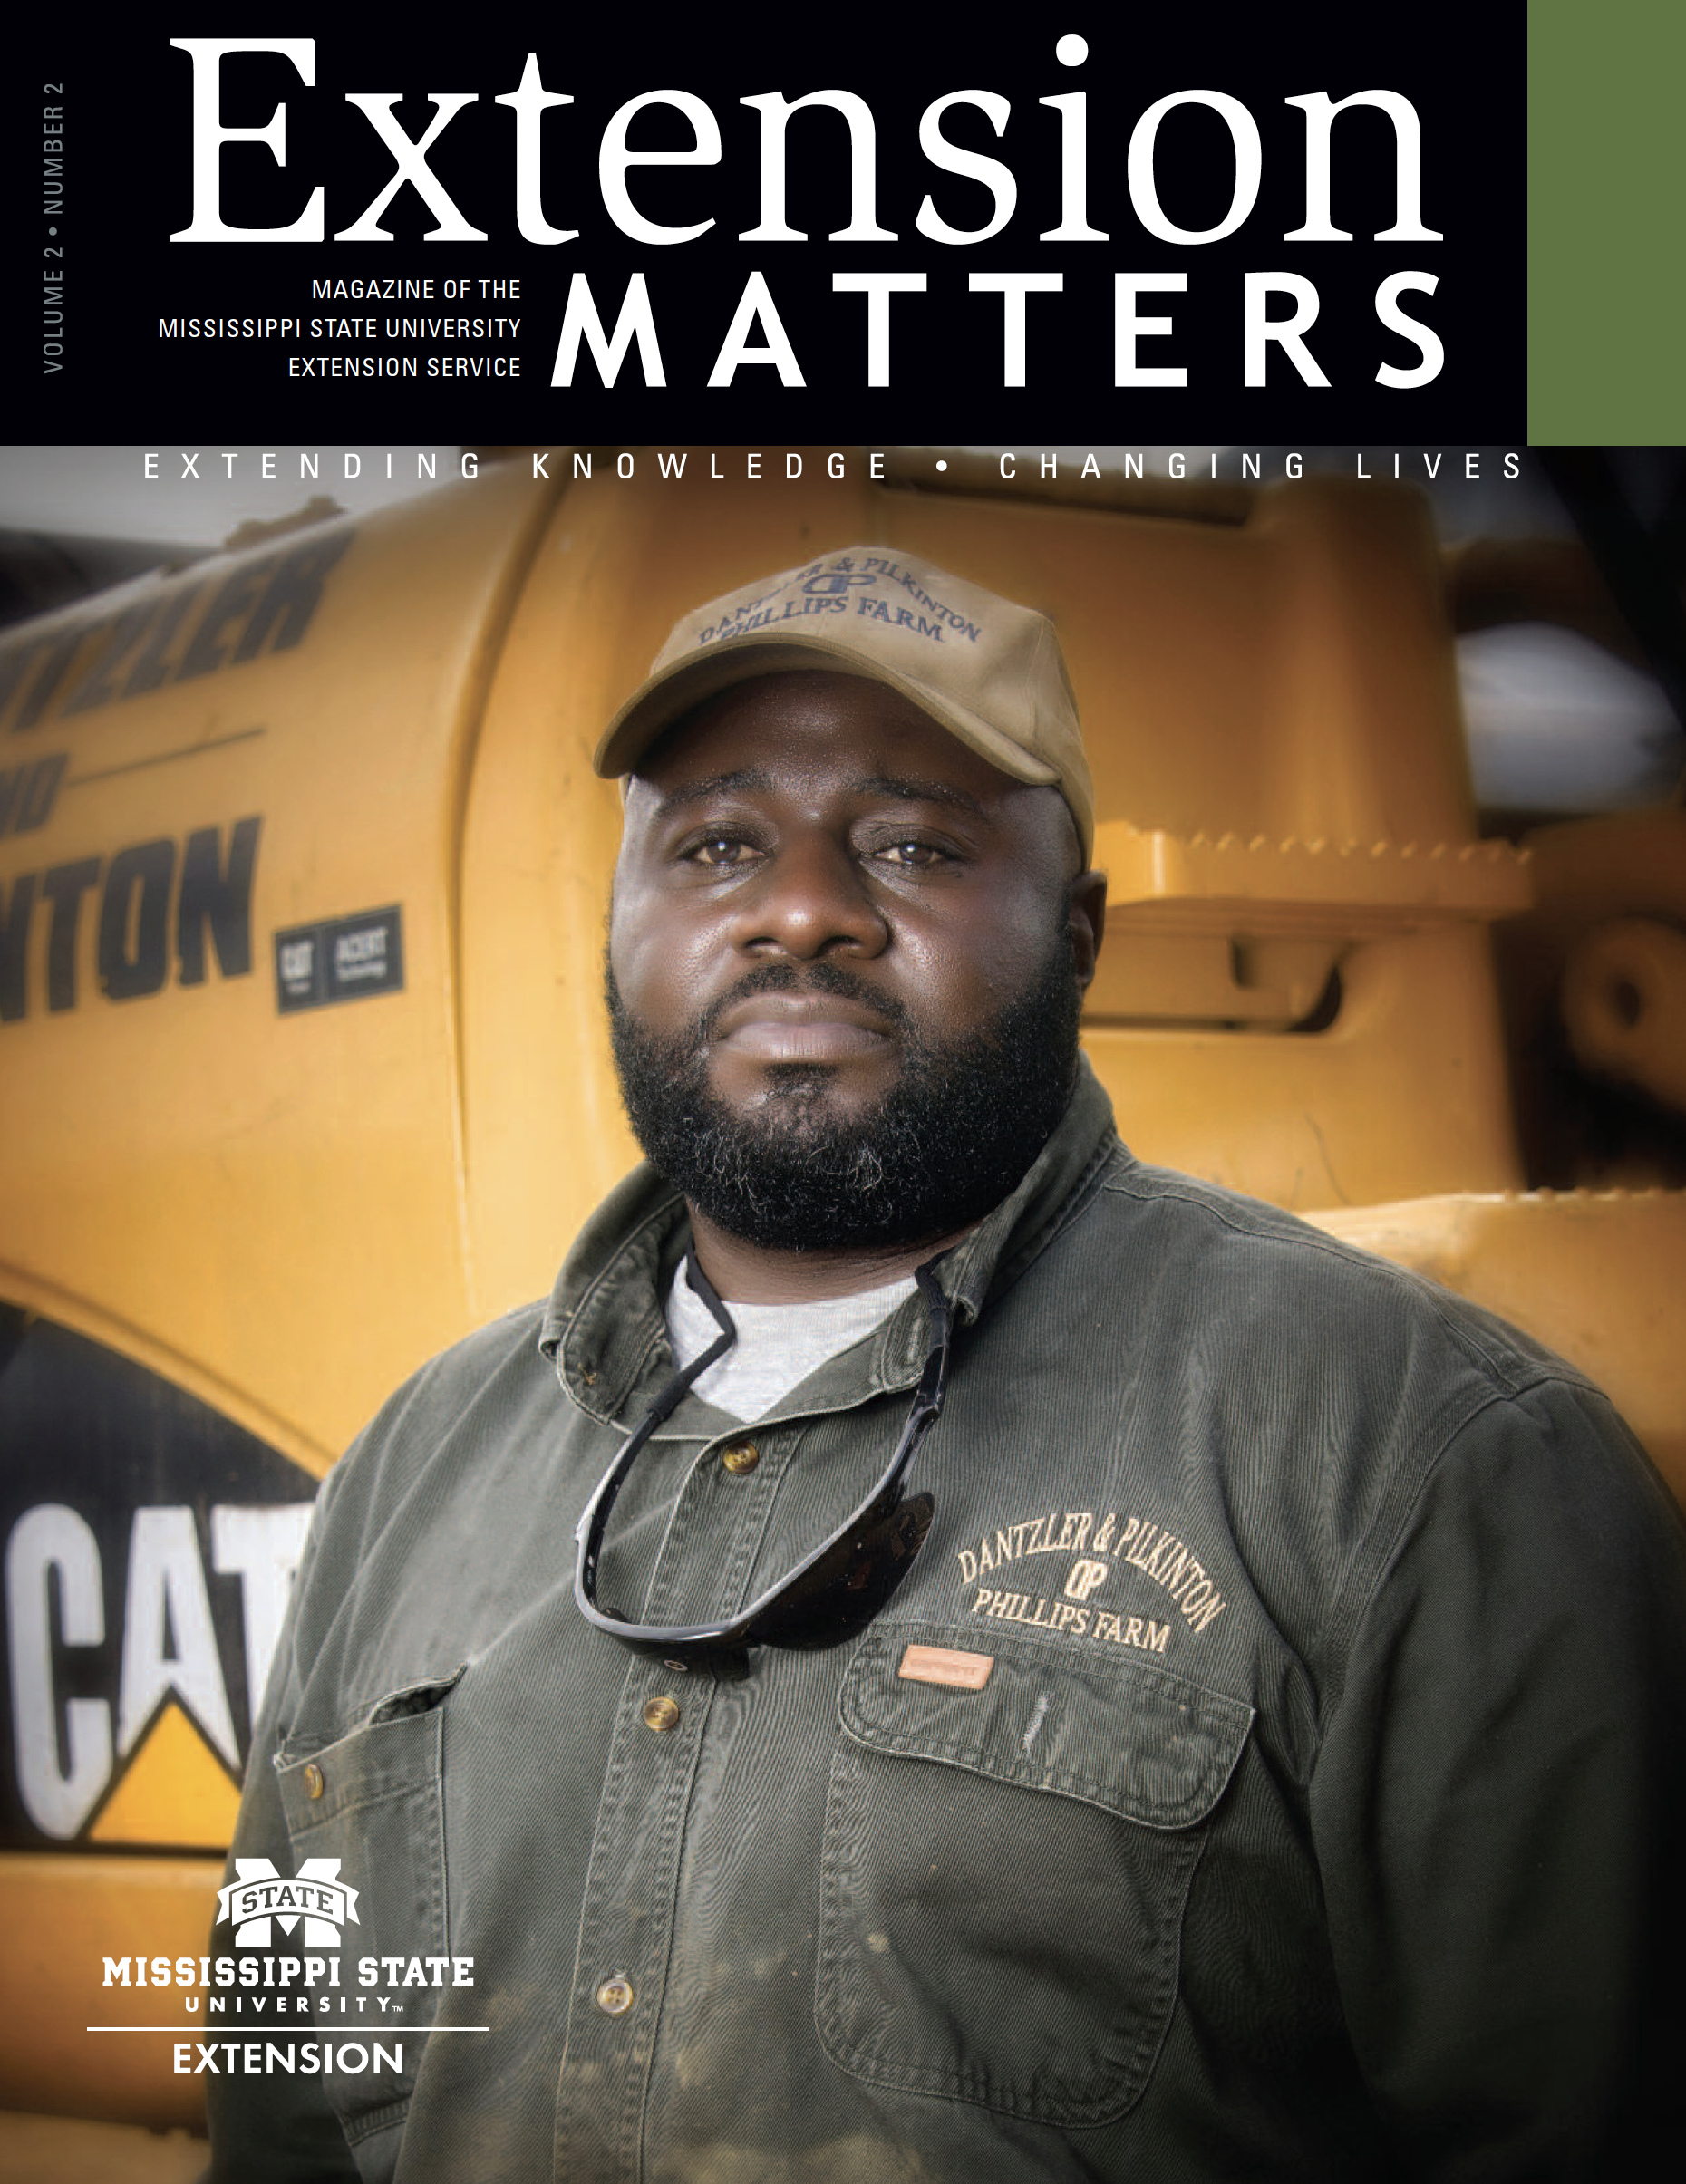 Extension Matters volume 2 number 2.